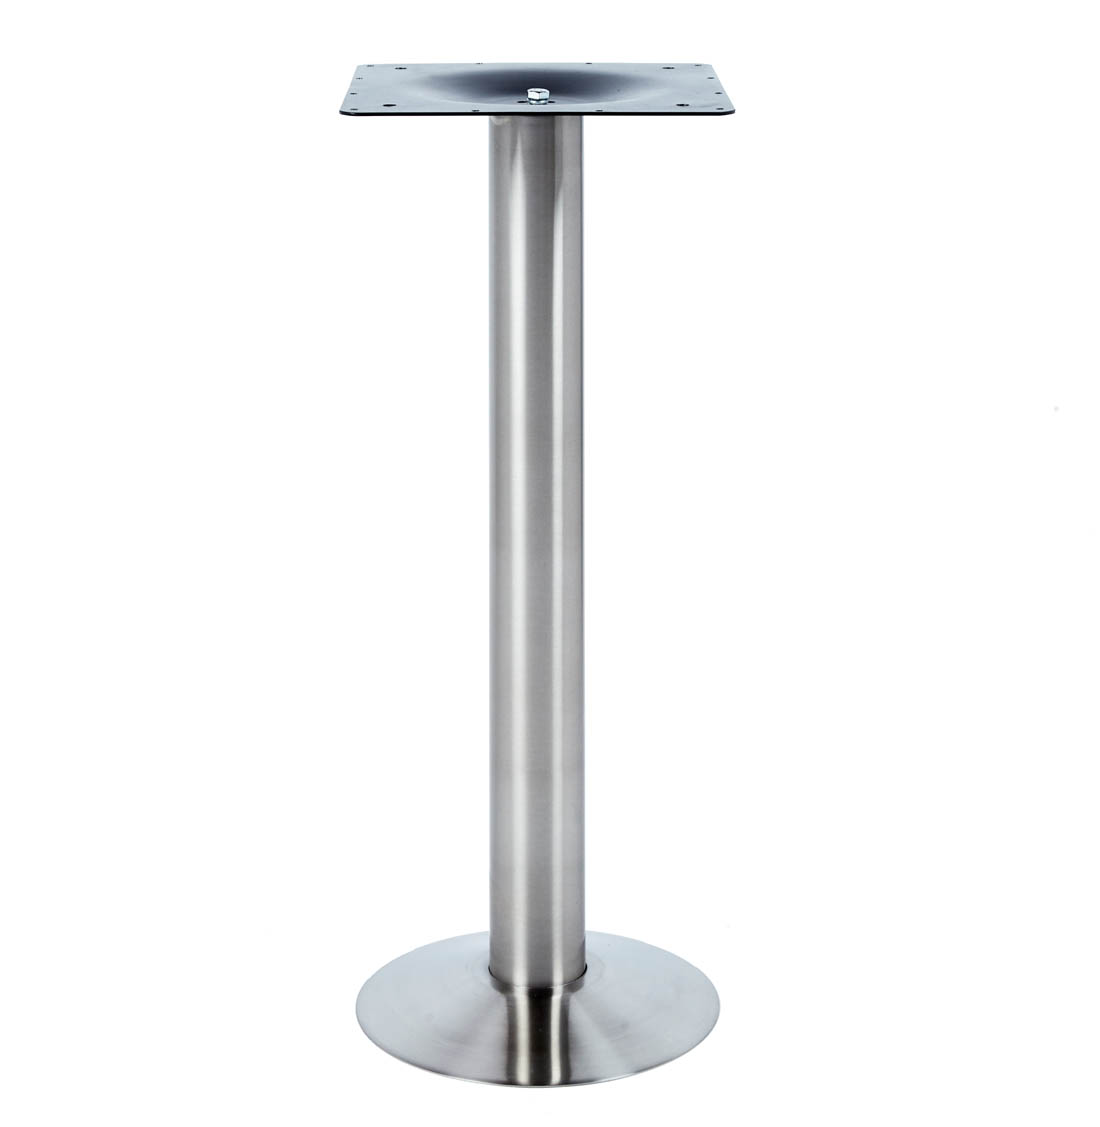 ROSWELL Floor Bolt Down Leg, Stainless Steel, Heavy Duty Welded Base, Large Top Plate